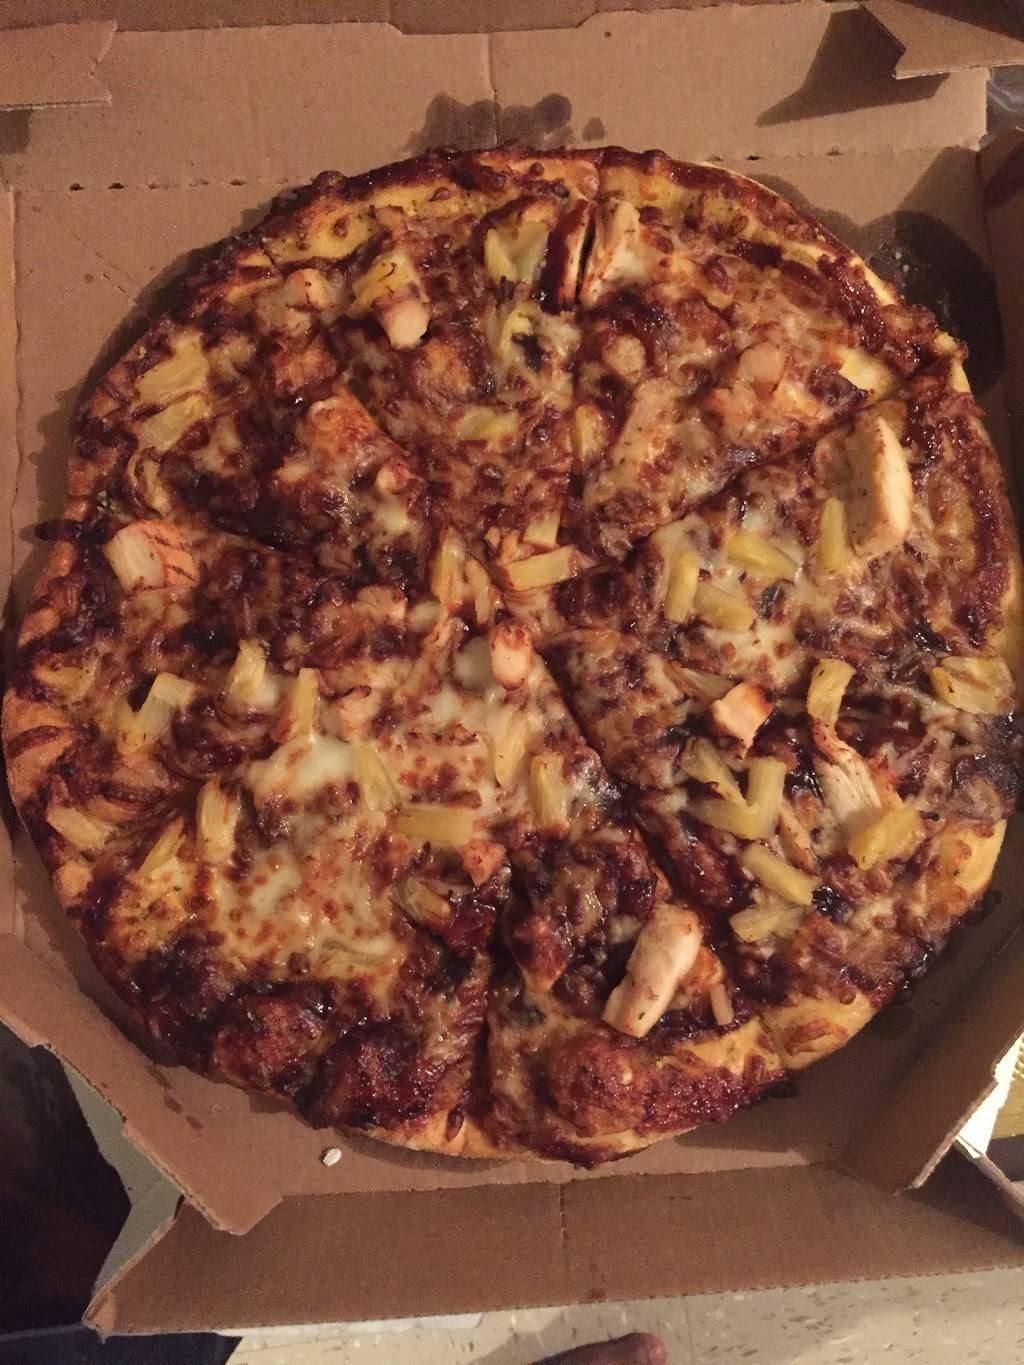 Dominos Pizza | meal delivery | 3025 3rd Ave, Bronx, NY 10455, USA | 7184013800 OR +1 718-401-3800